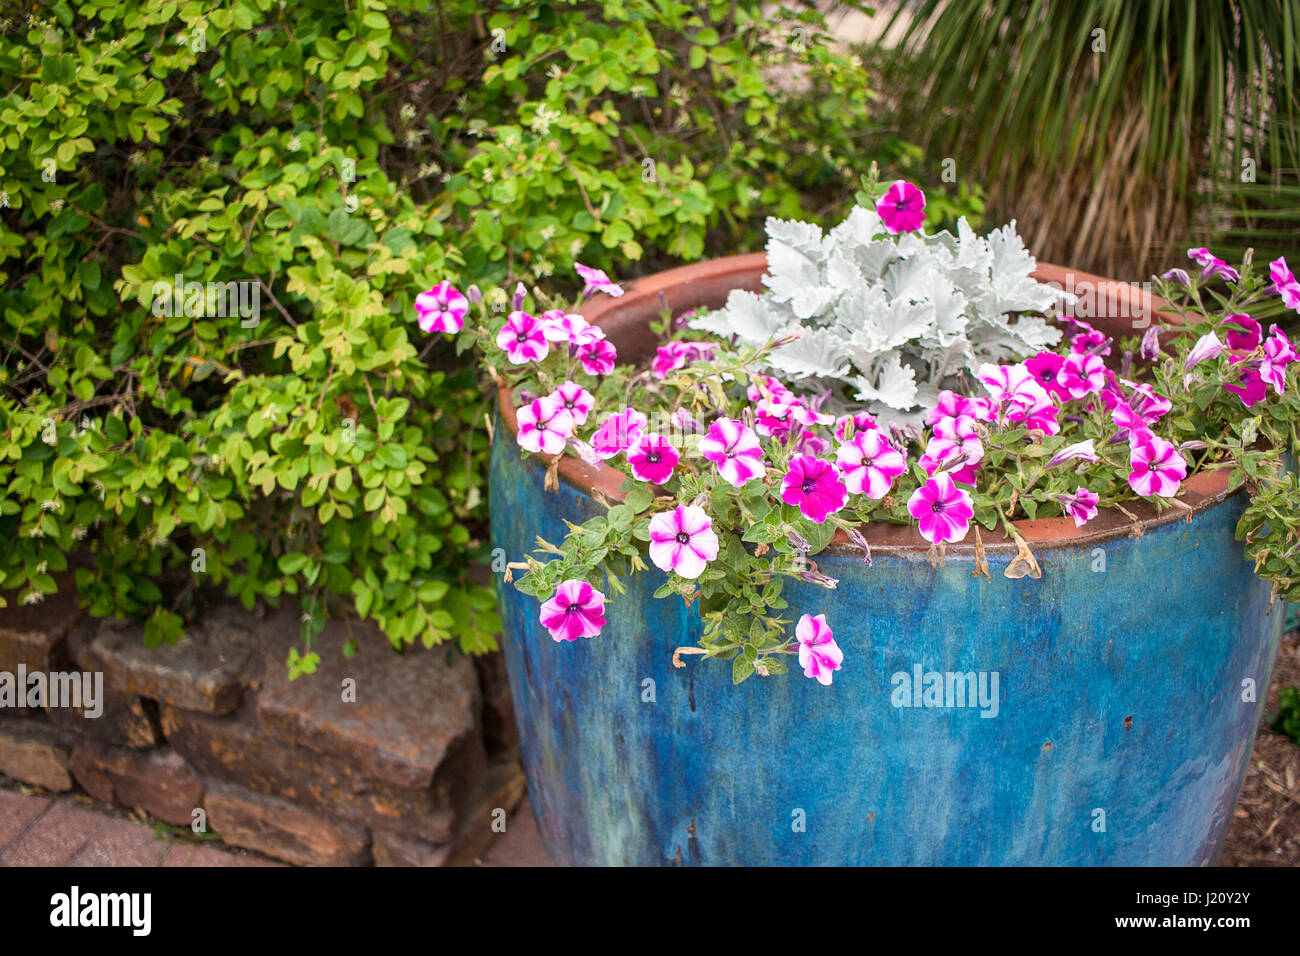 White petunias stock photos white petunias stock images alamy - Growing petunias pots balconies porches ...